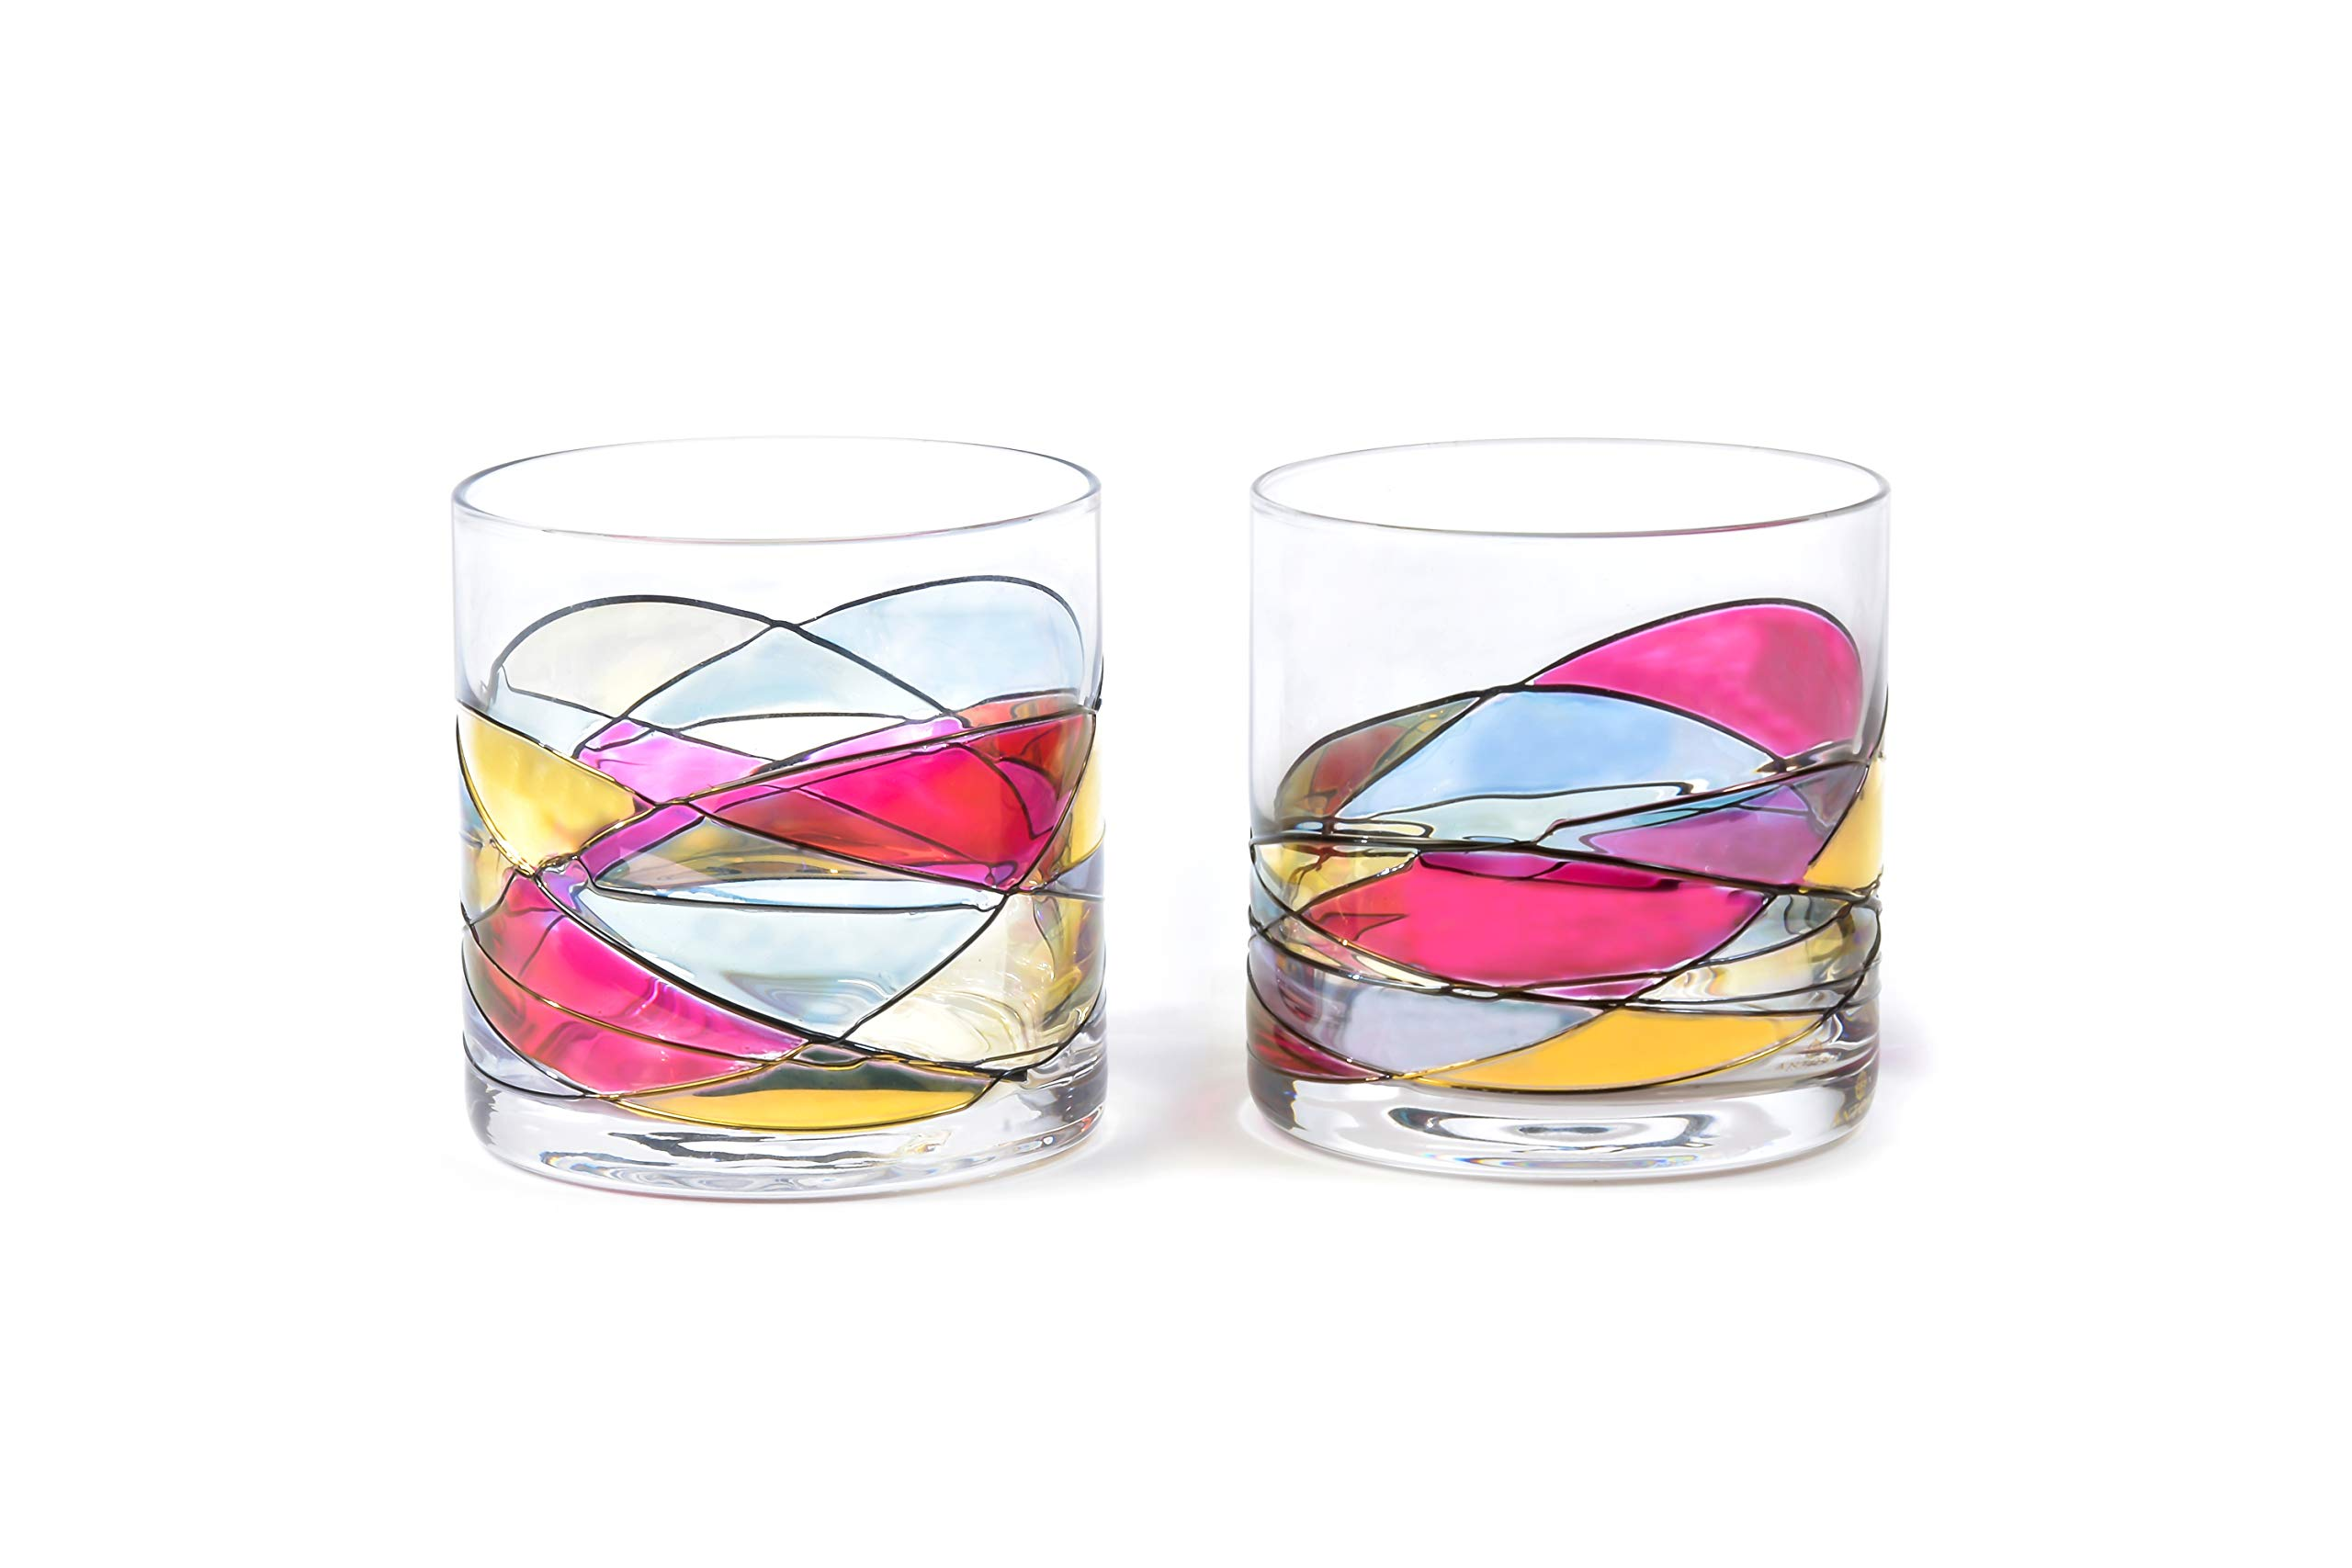 ANTONI BARCELONA Whiskey Bourbon Glass 12Oz SET 2 Sagrada Red Line Hand Painted Mouth Blown Unique gifts & presents dad birthday spiritual moments stunning and gorgeous colorful old fashioned on Rocks by ANTONI BARCELONA